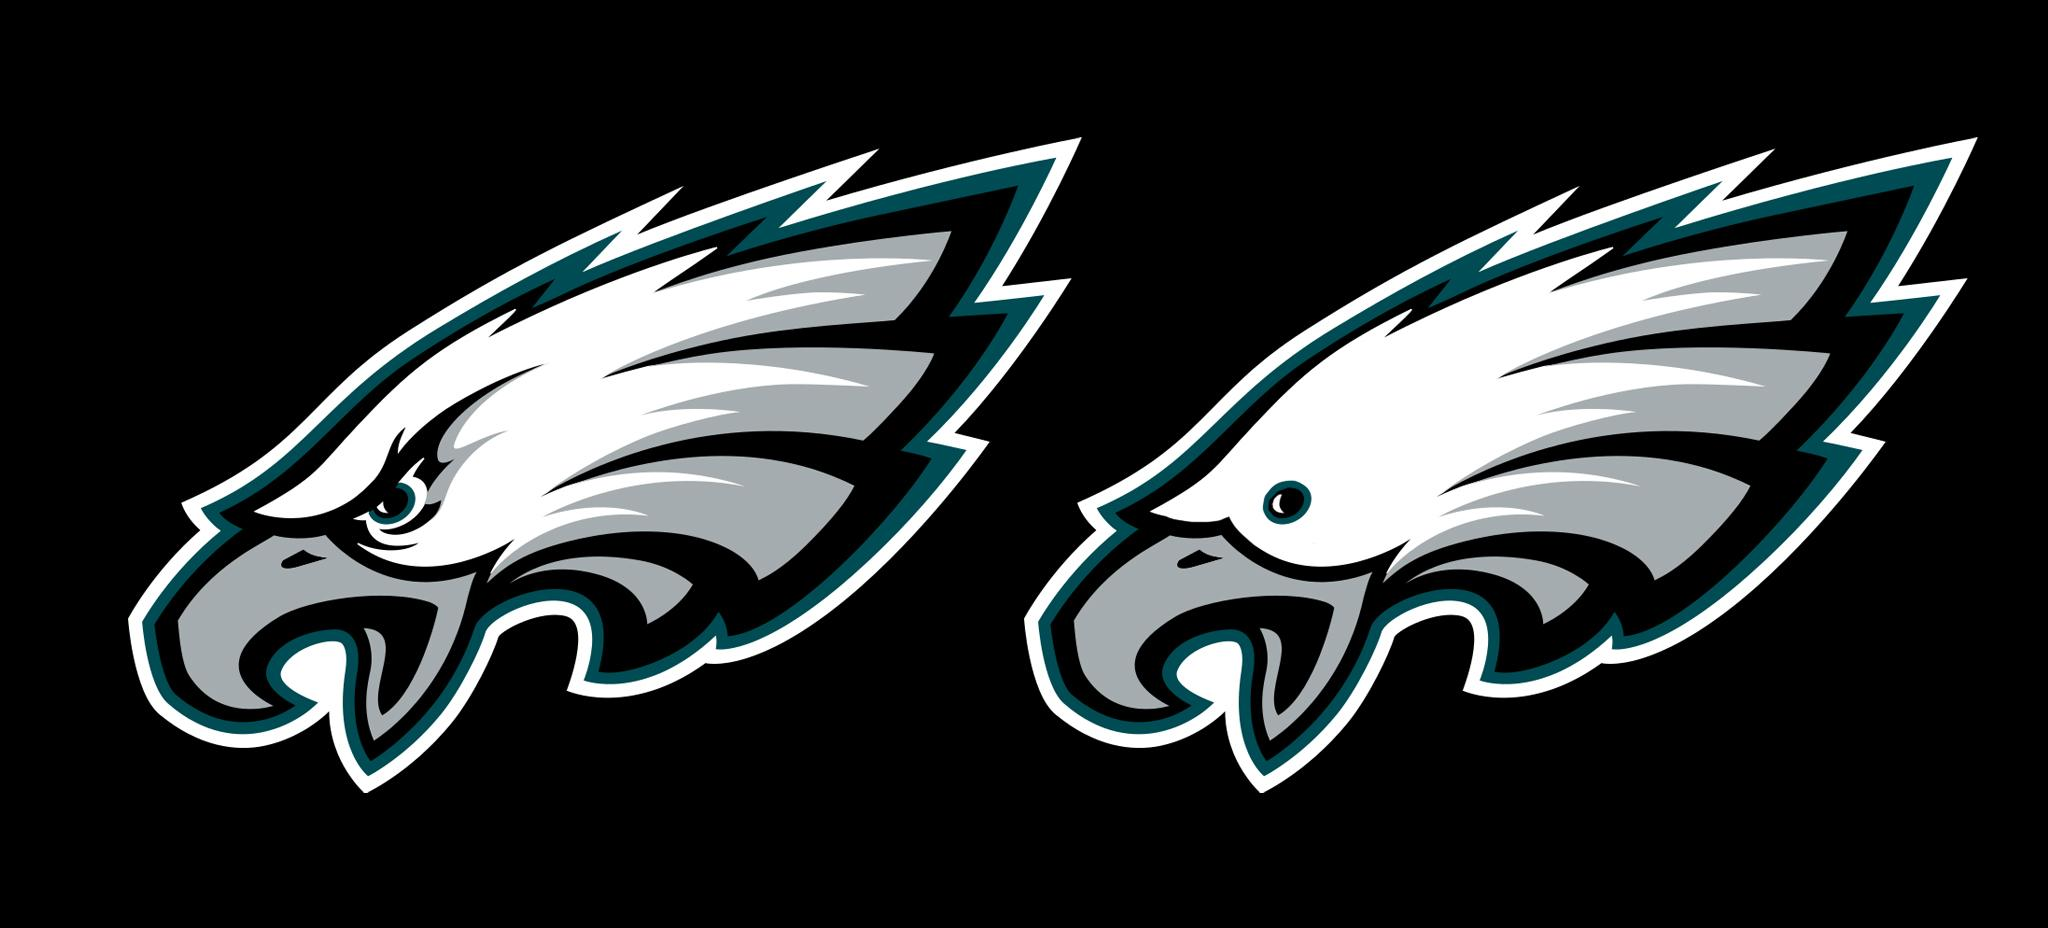 Eagles Logo - The Philadelphia Eagles logo without eyebrows : eagles